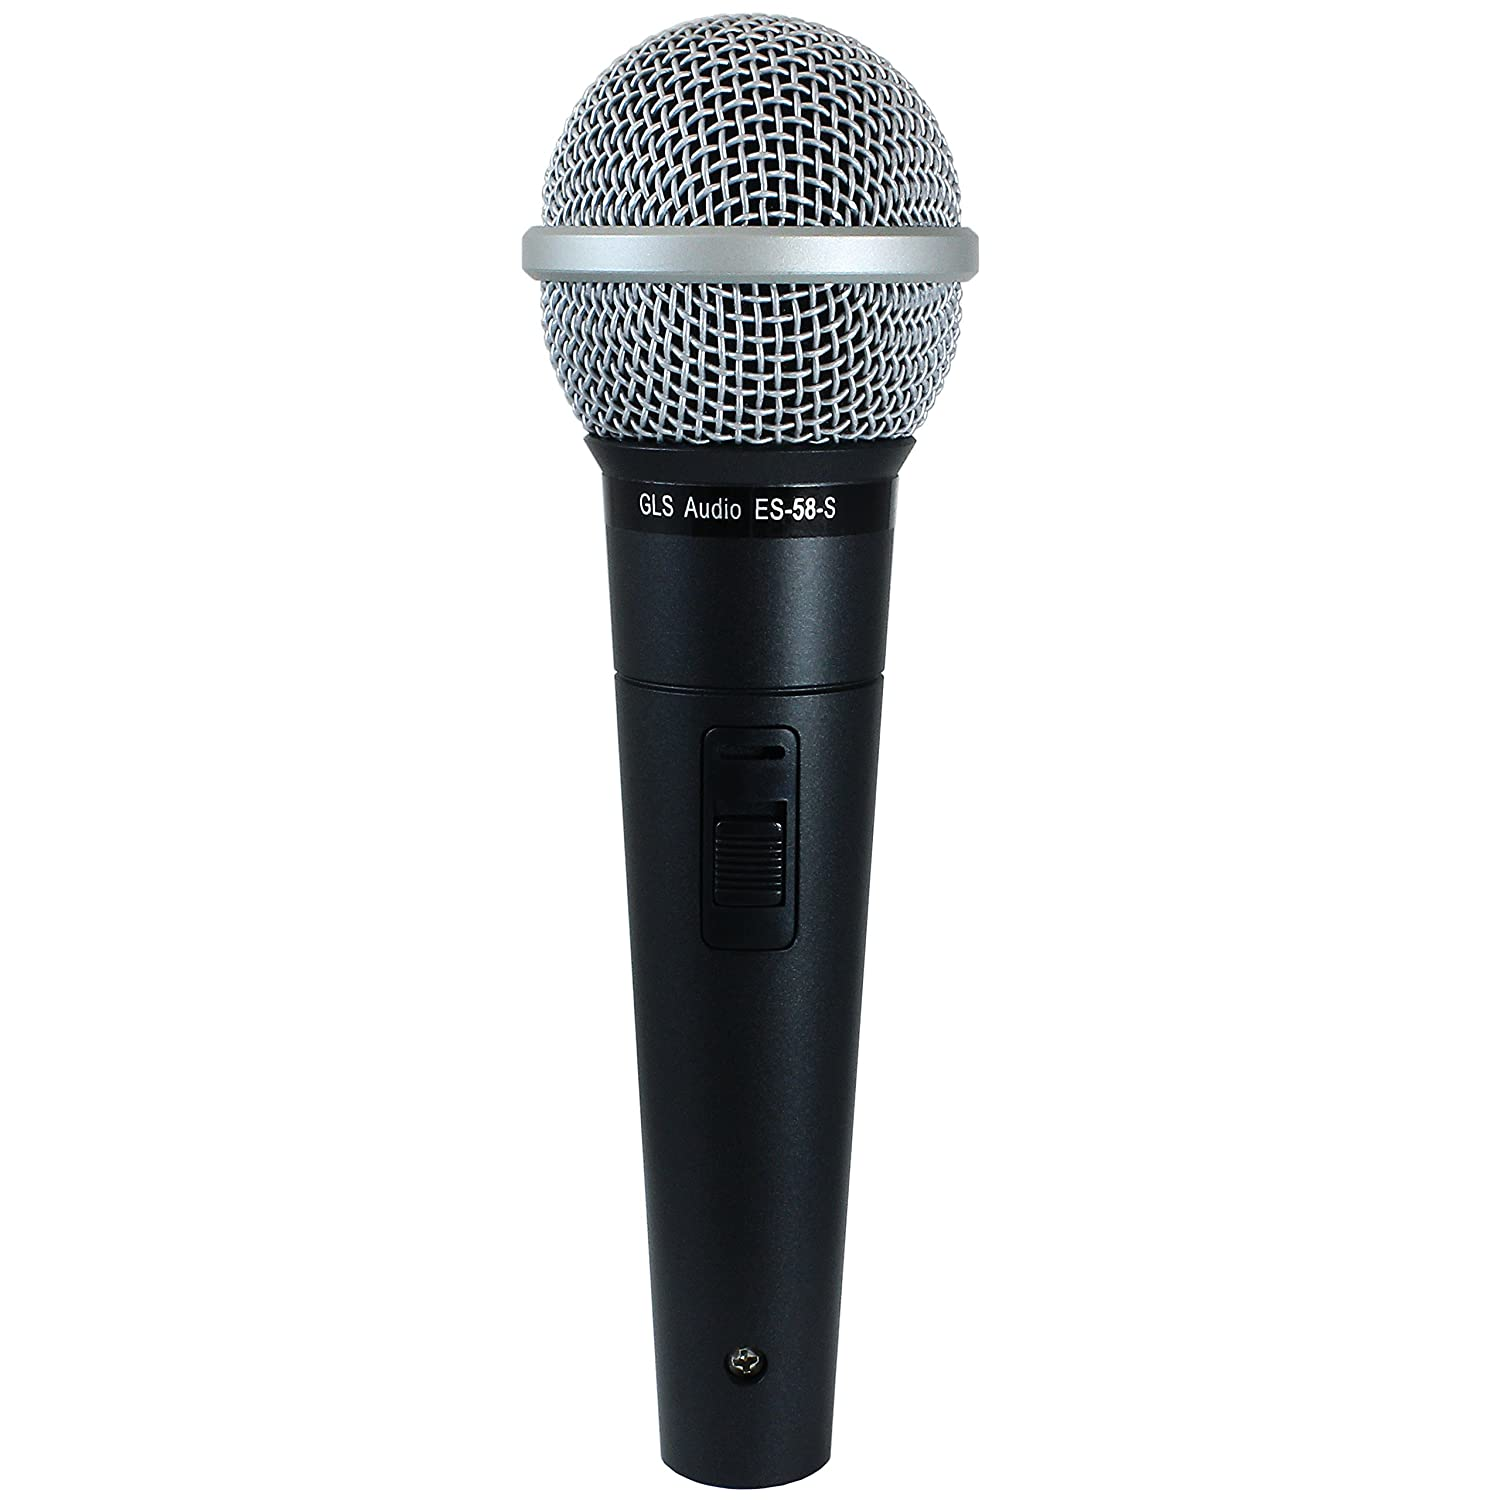 GLS Audio Vocal Microphone ES-58-S & Mic Clip - Professional Series ES58-S Dynamic Cardioid Mike Unidirectional (With On/Off Switch) 37-205